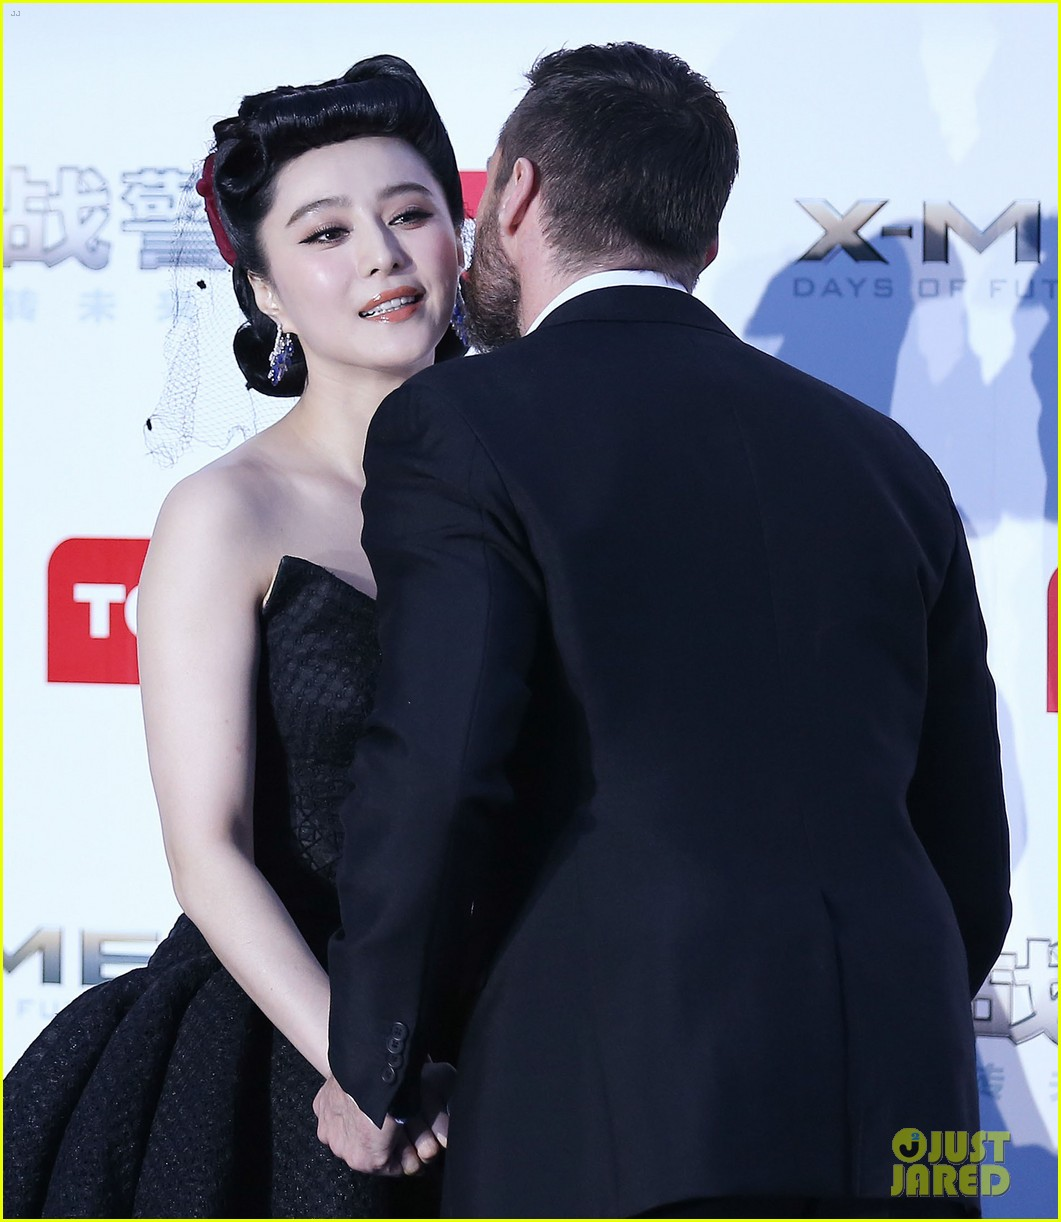 hugh jackman premieres x men with fan bingbing peter dinklage in beijing 033113083